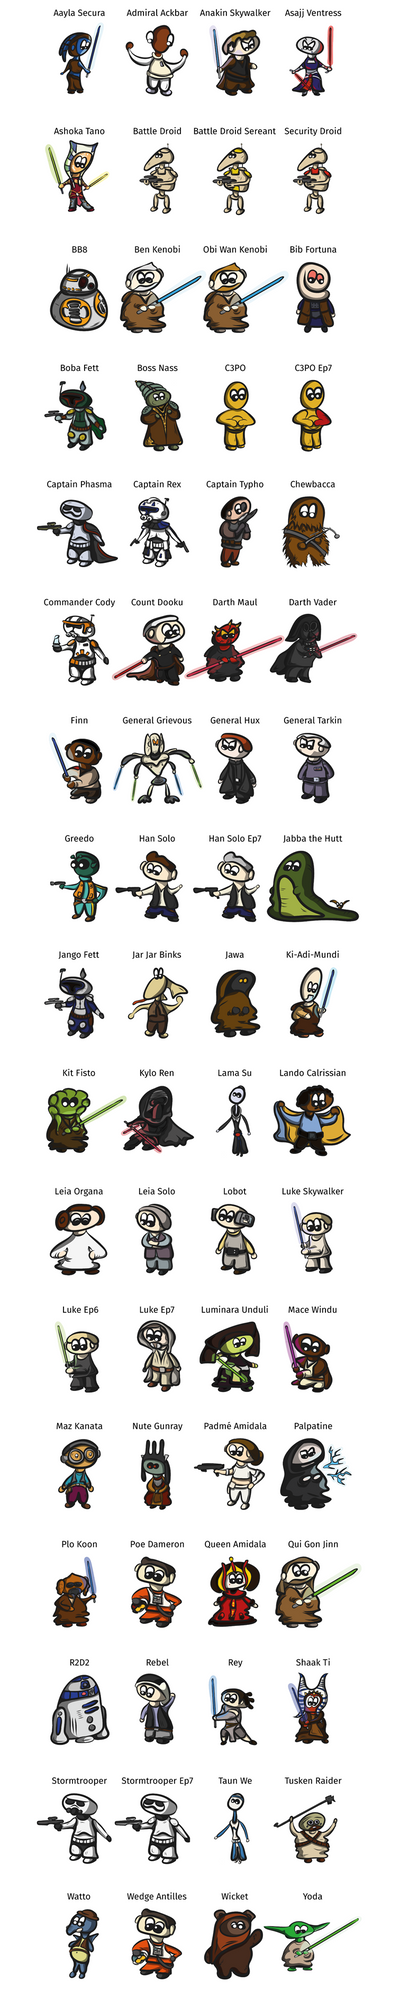 Star Wars / Character Collection by JosephSinger